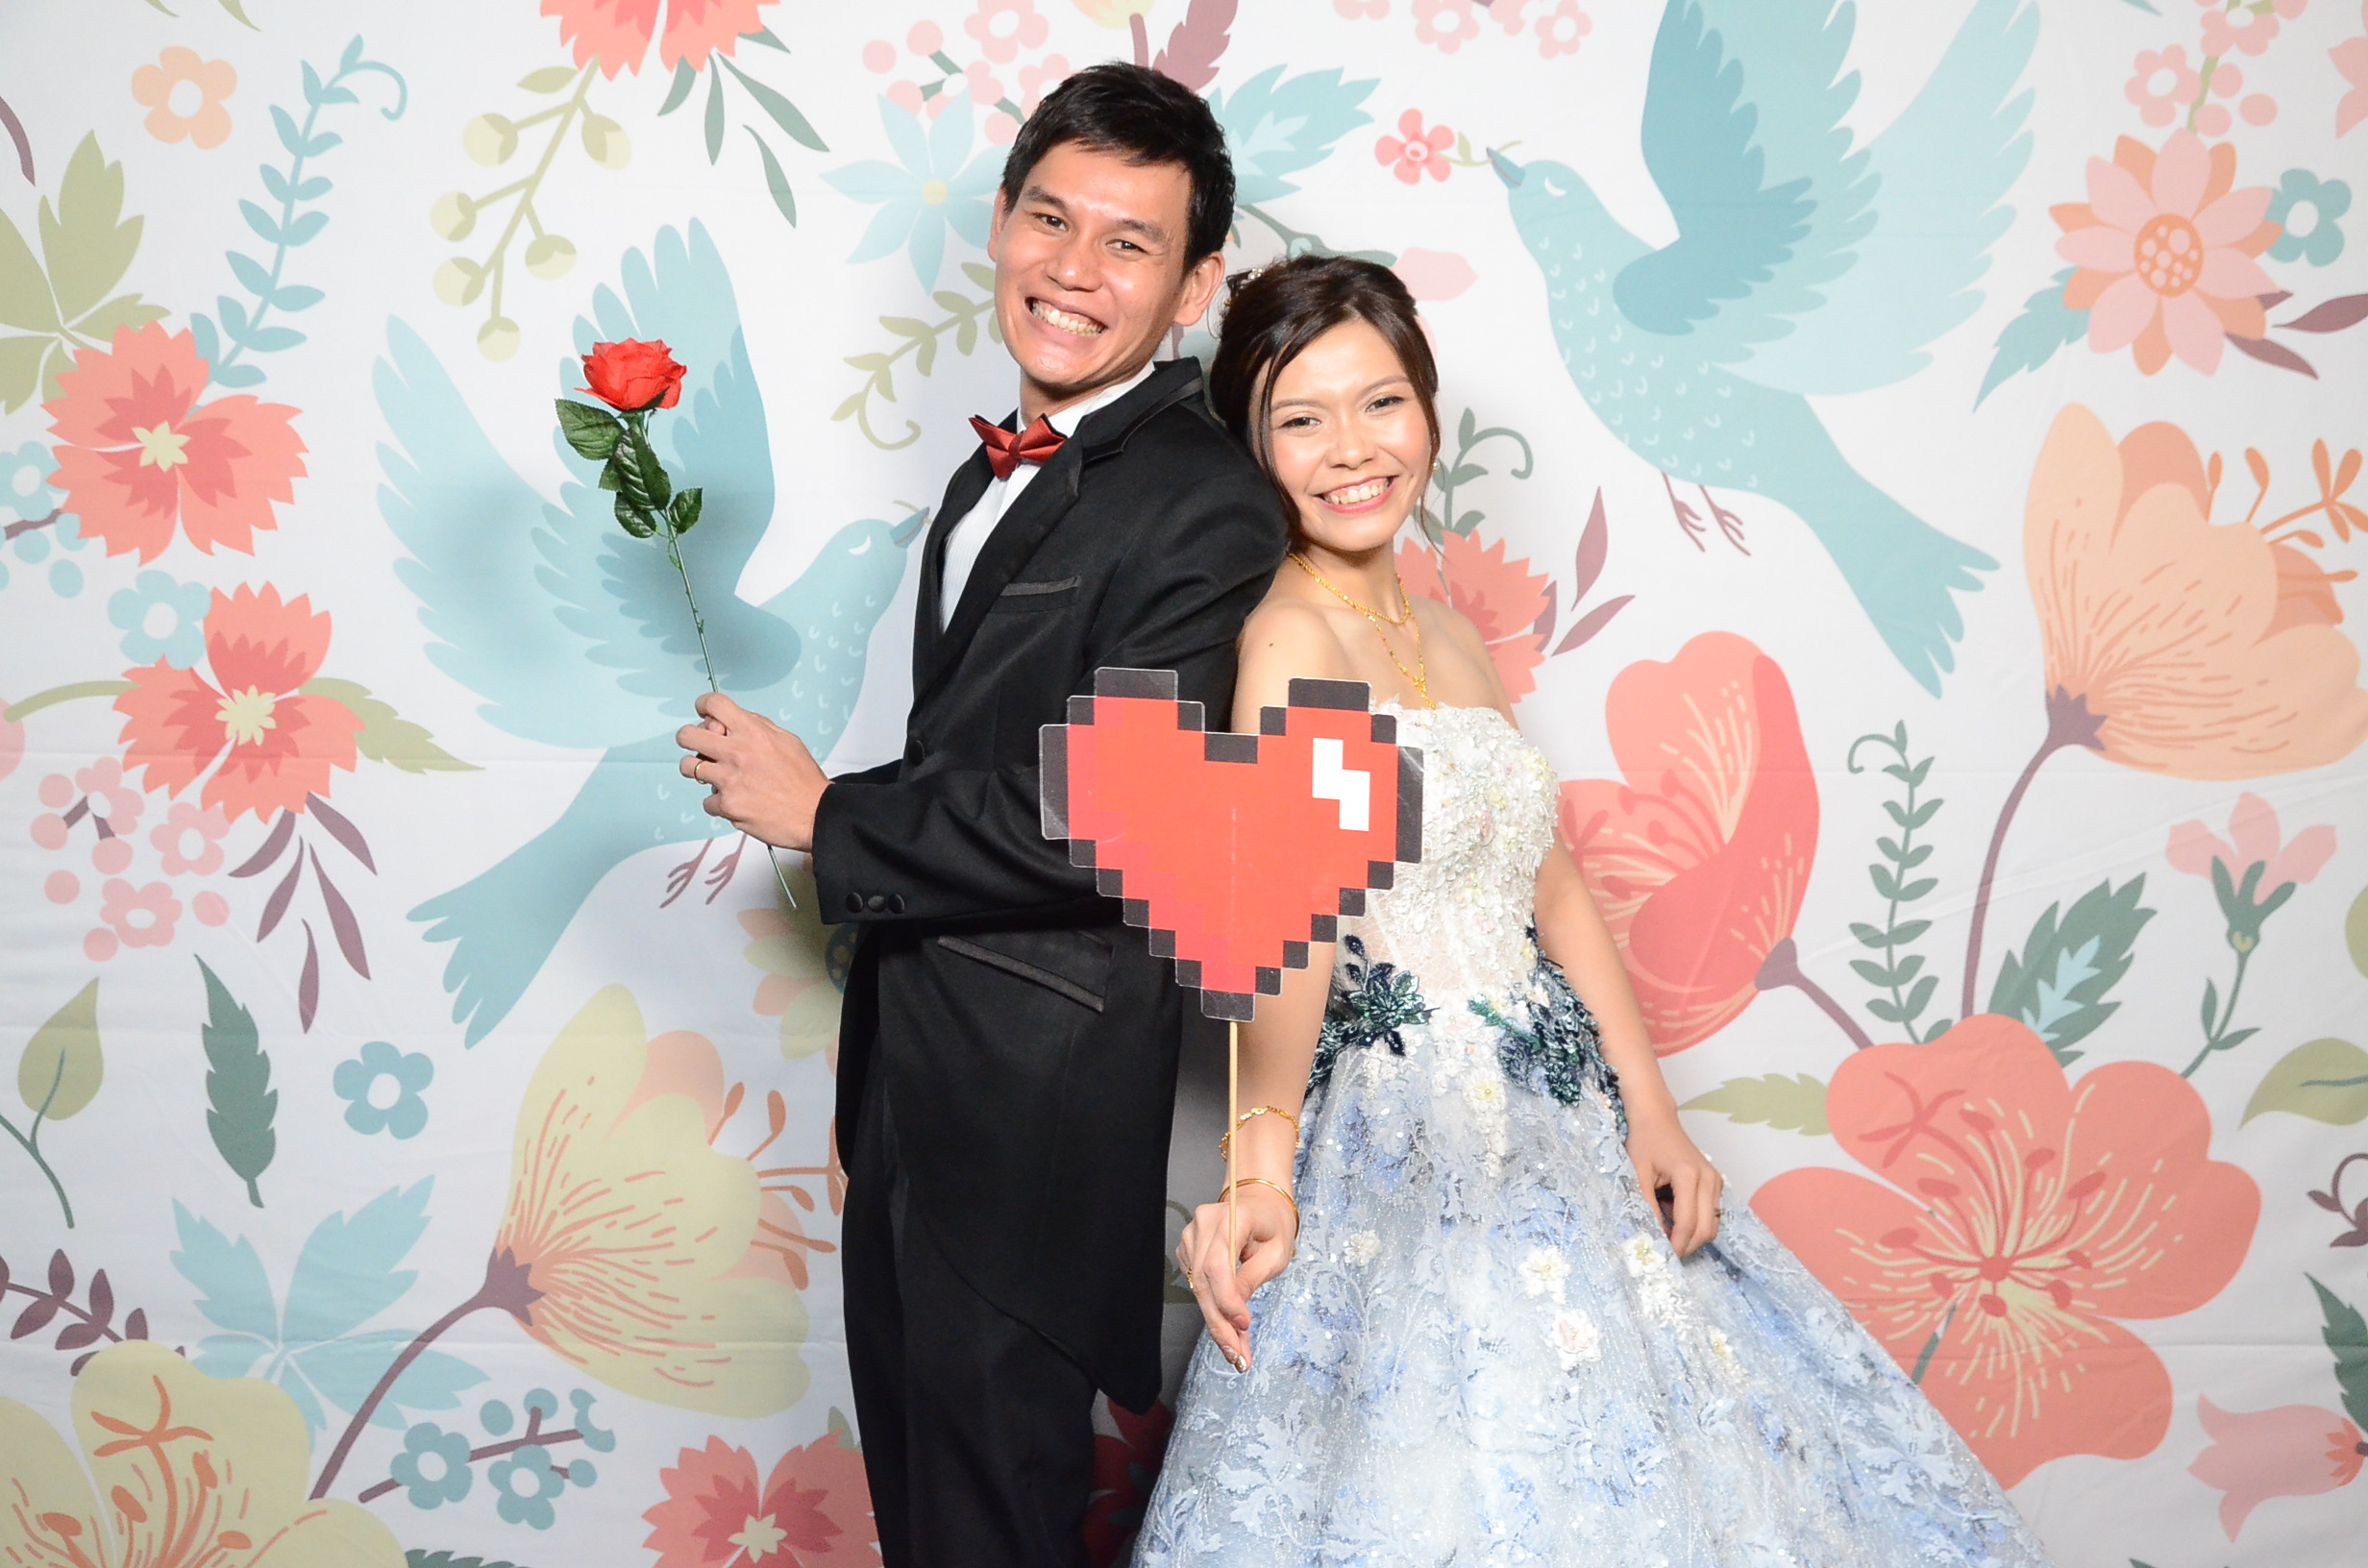 Wedding Photo Booth - Zhi Wei & Fui Ling